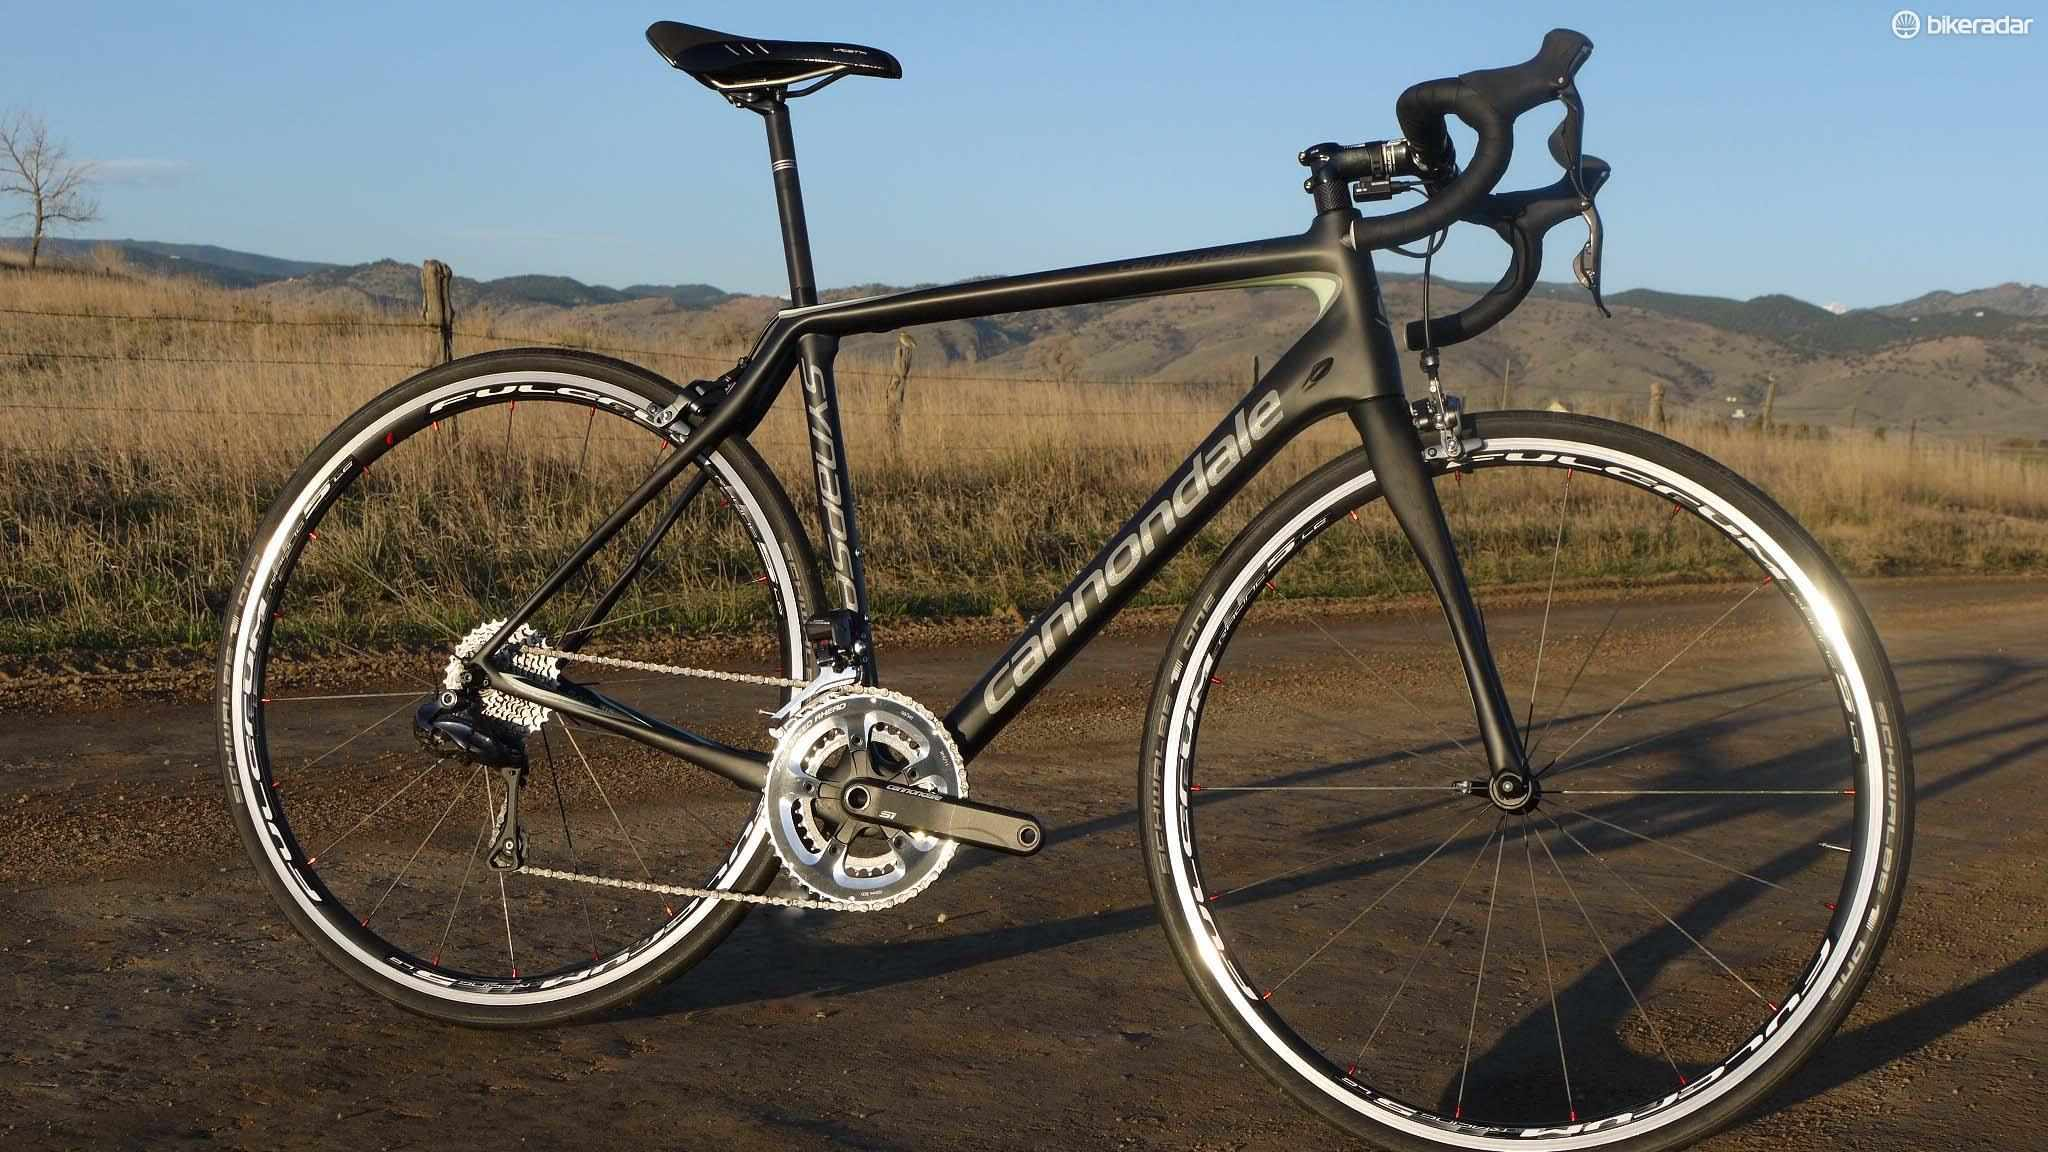 Cannondale's Synapse Carbon Women's Ultegra Di2 hits a real sweet spot between performance and comfort